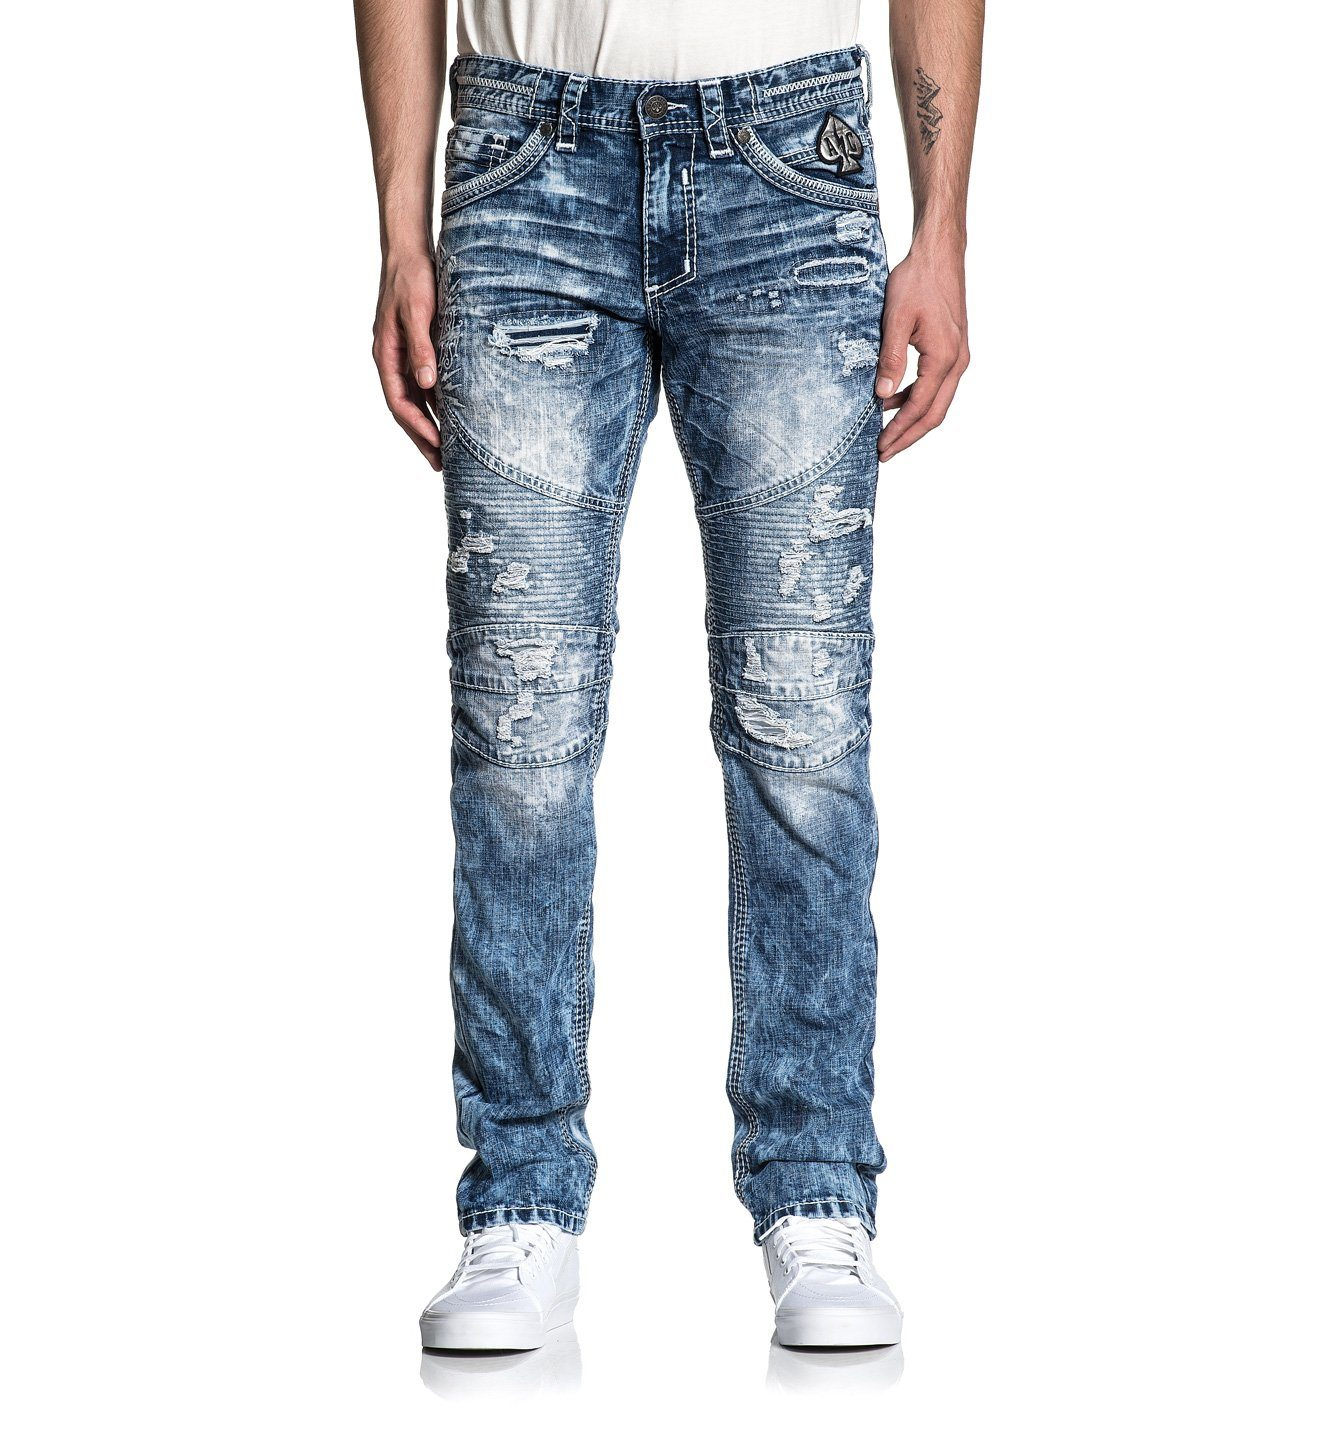 Gage Relent Fletch - Mens Denim Bottoms - Affliction Clothing